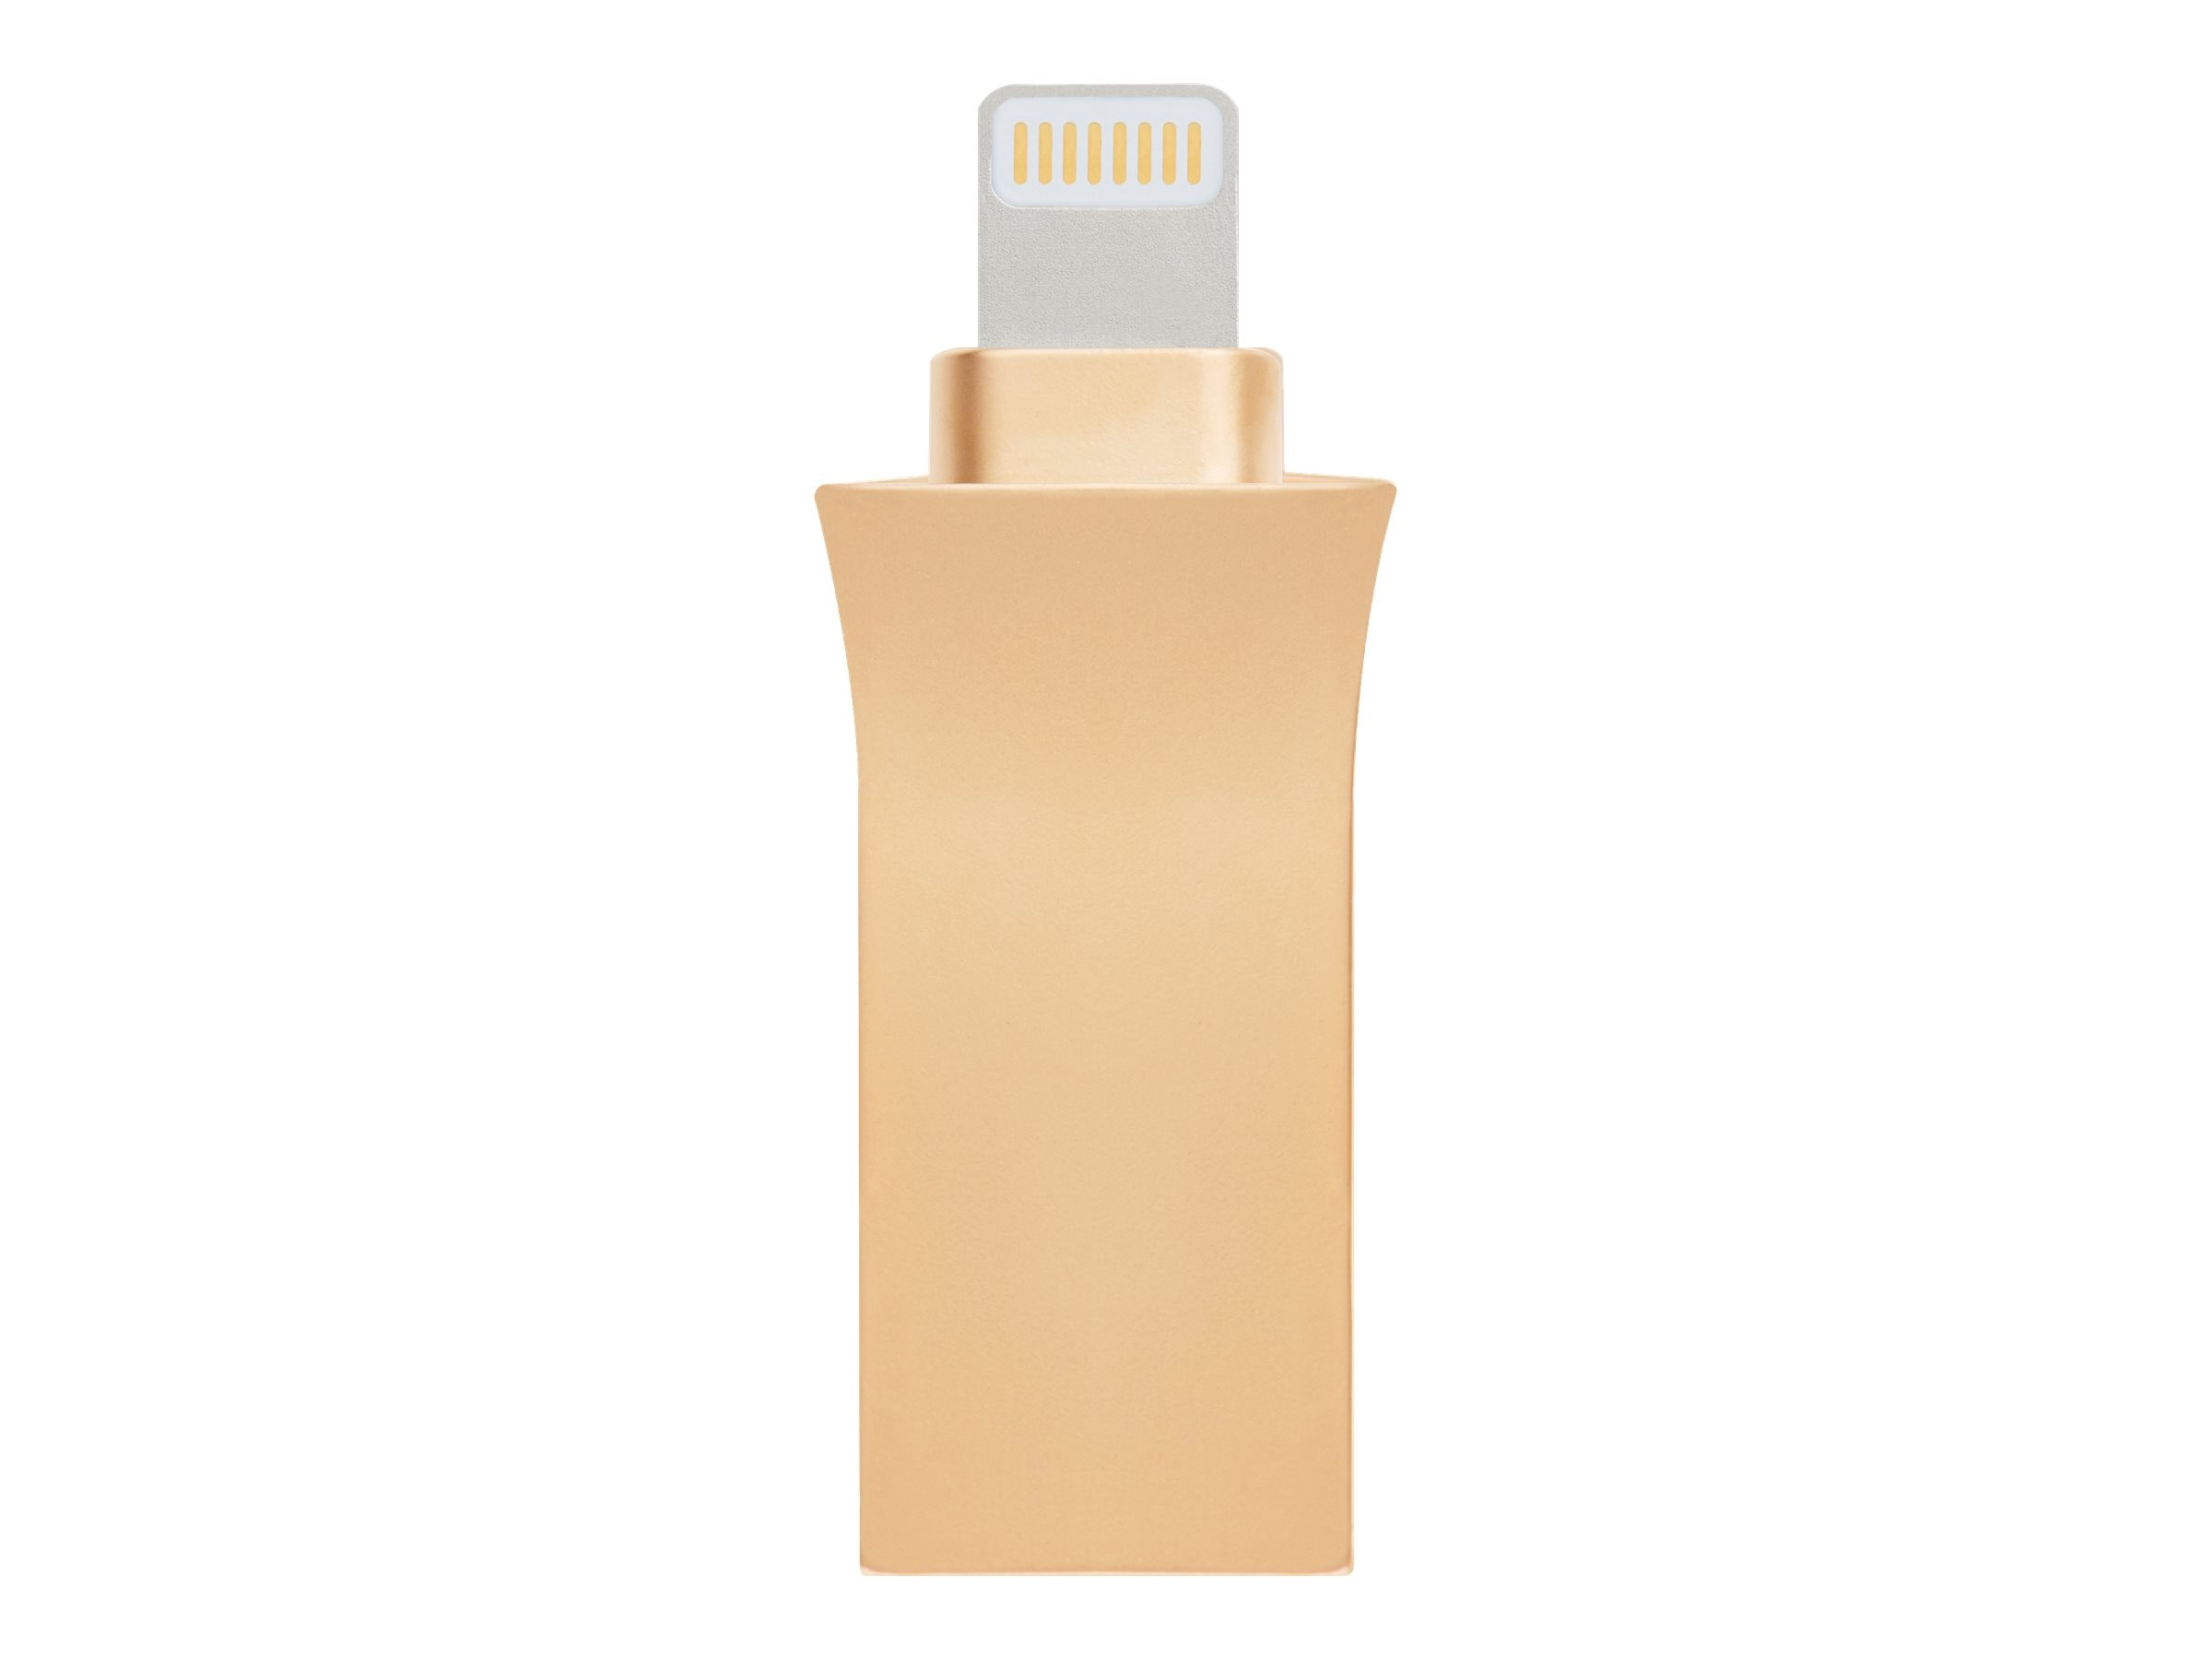 Transcend 32GB JetDrive Go 500 Lightning USB 3.1 Flash Drive, Gold, TS32GJDG500G